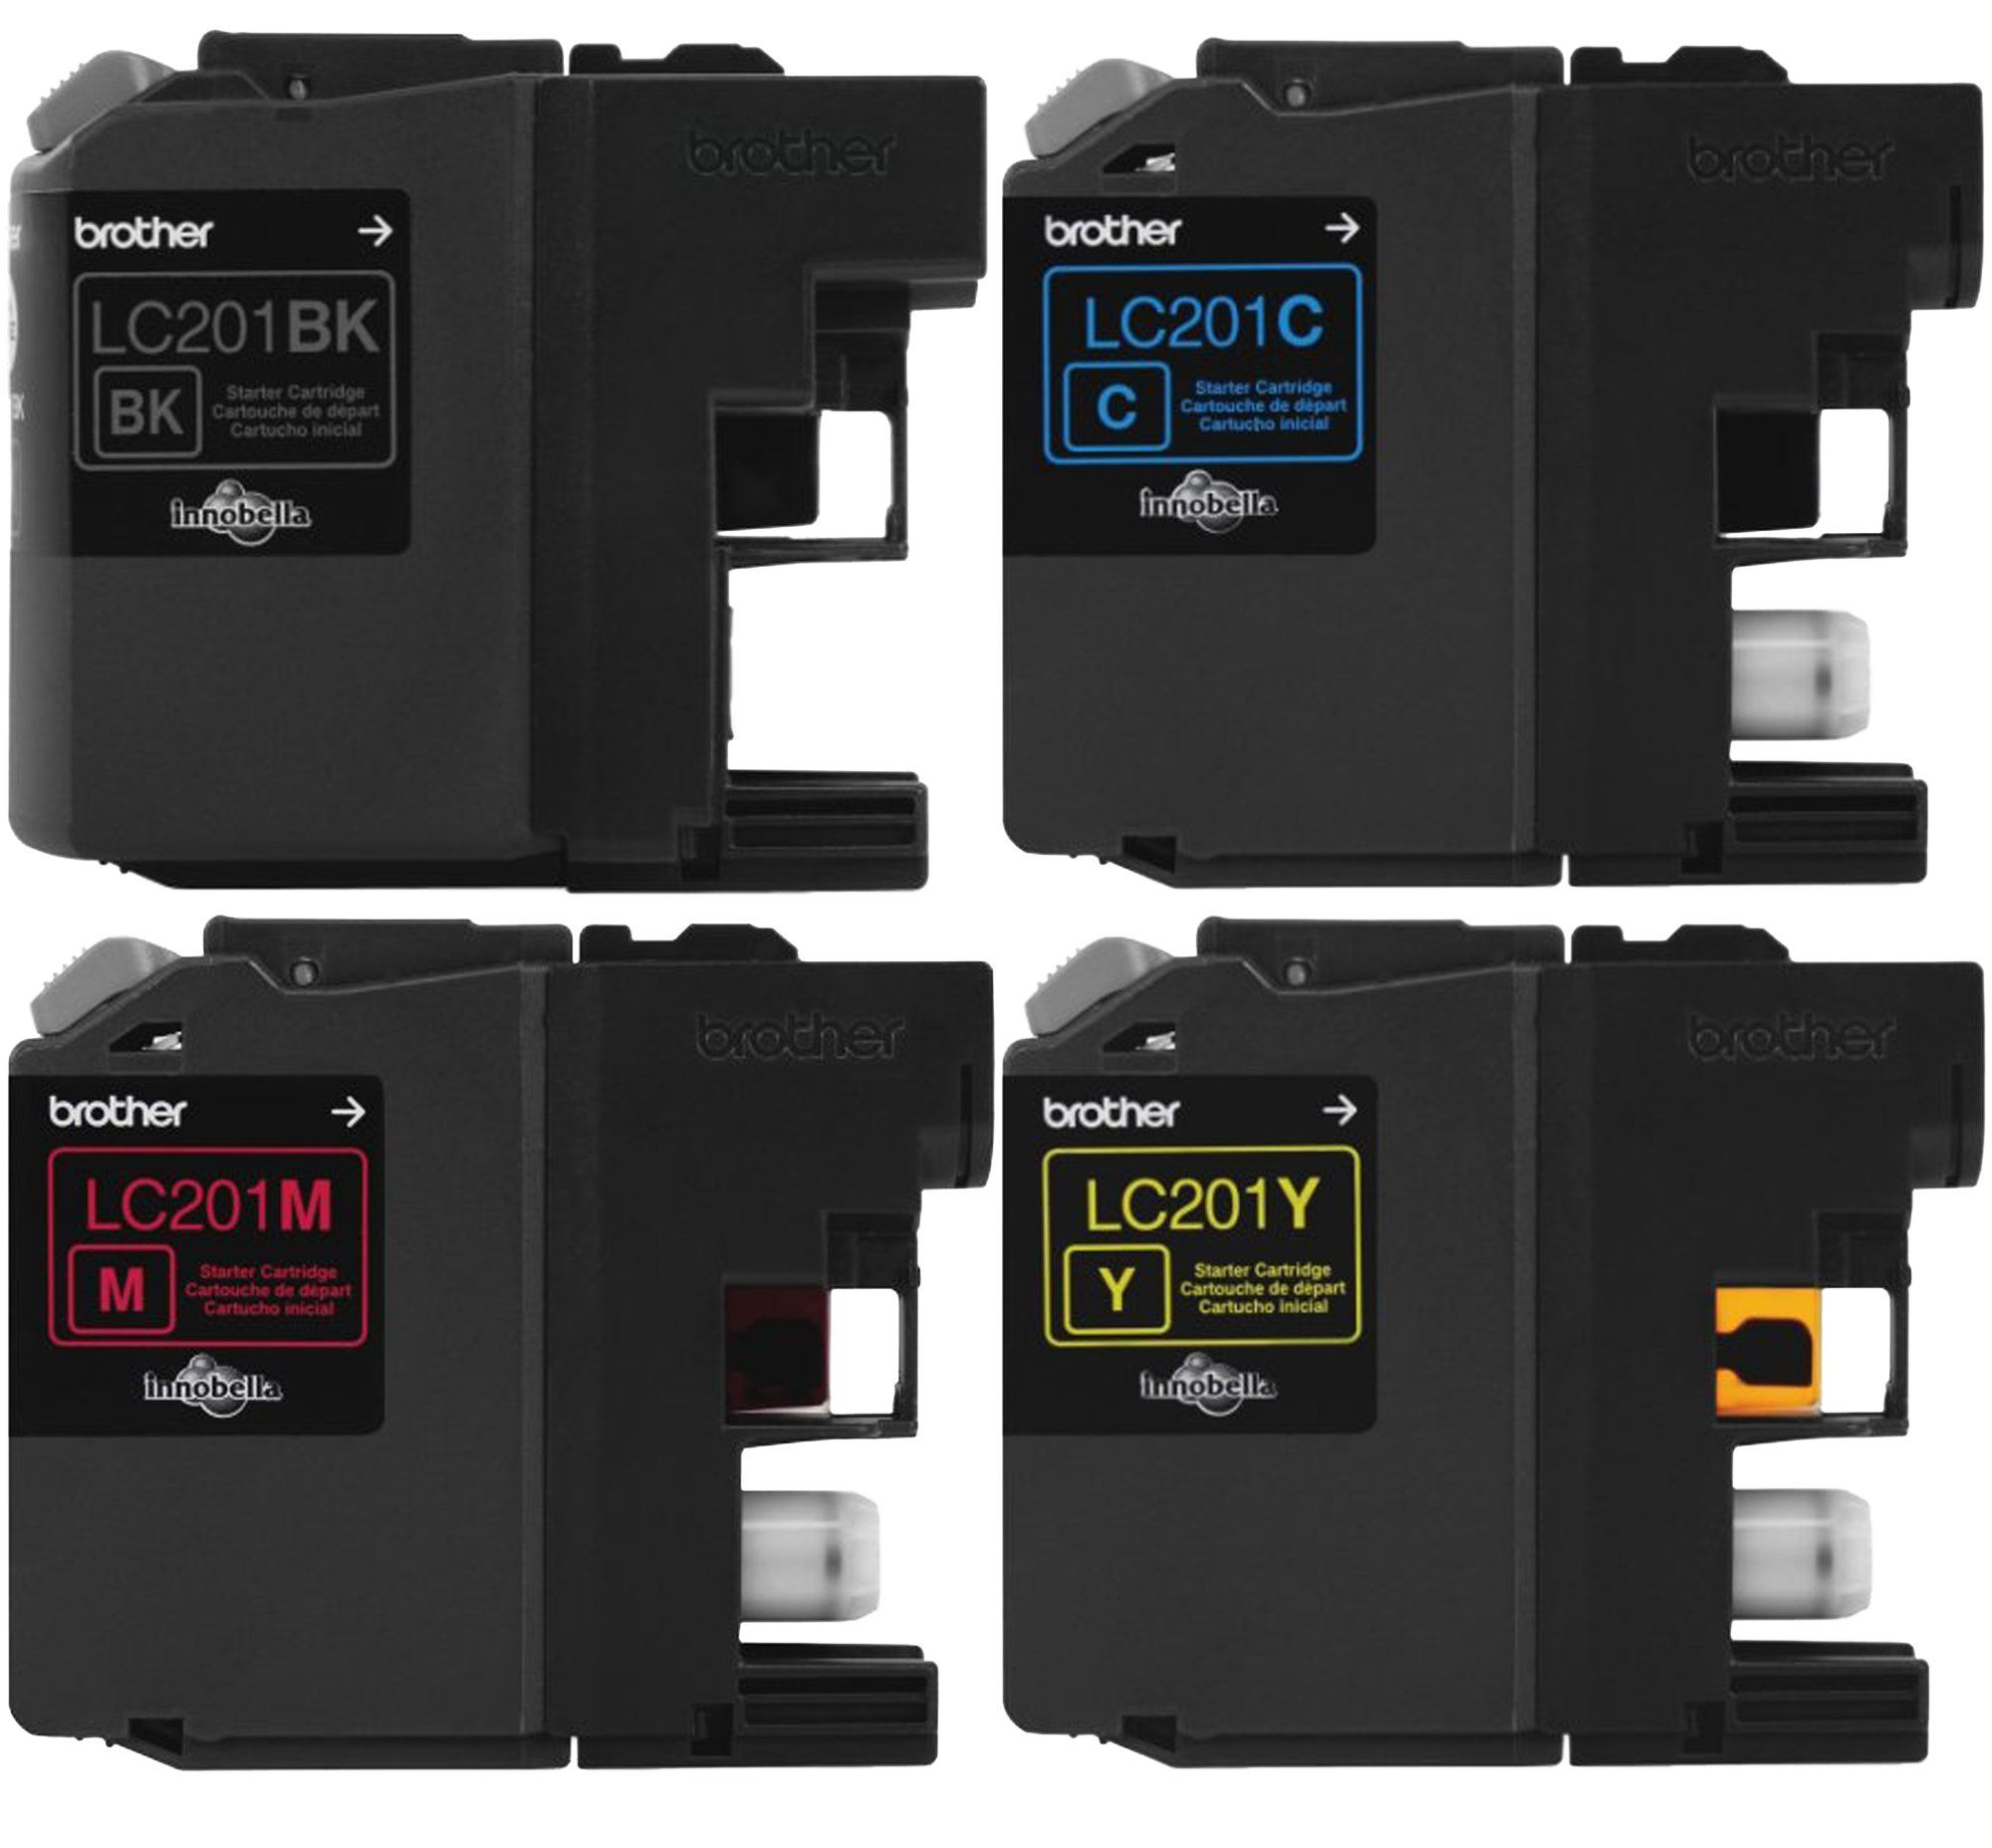 Brother Lc 201 Ink Cartridge 4 Pack In Bulk Packaging For Label Tape Tze 242 18mm Red On White Tze242 Mfc J480dw J680dw J880dw J885dw